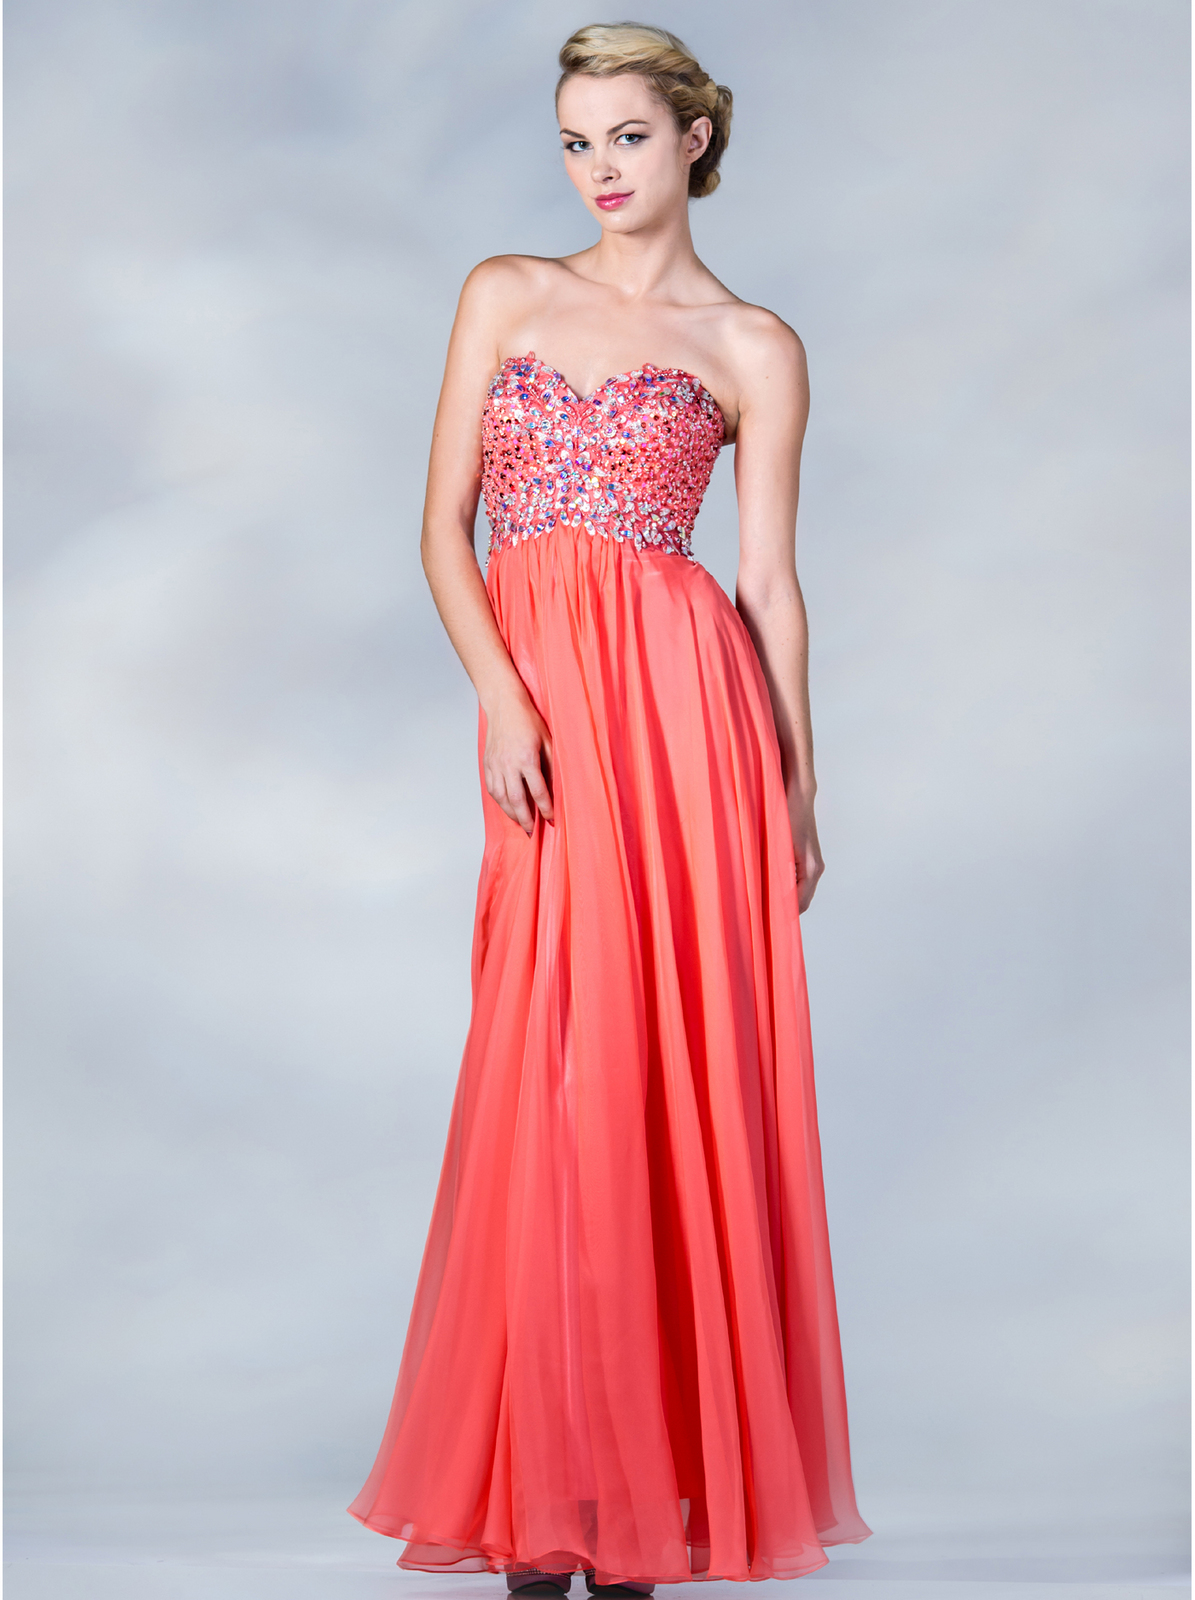 Jeweled Bodice Evening Dress | Sung Boutique L.A.